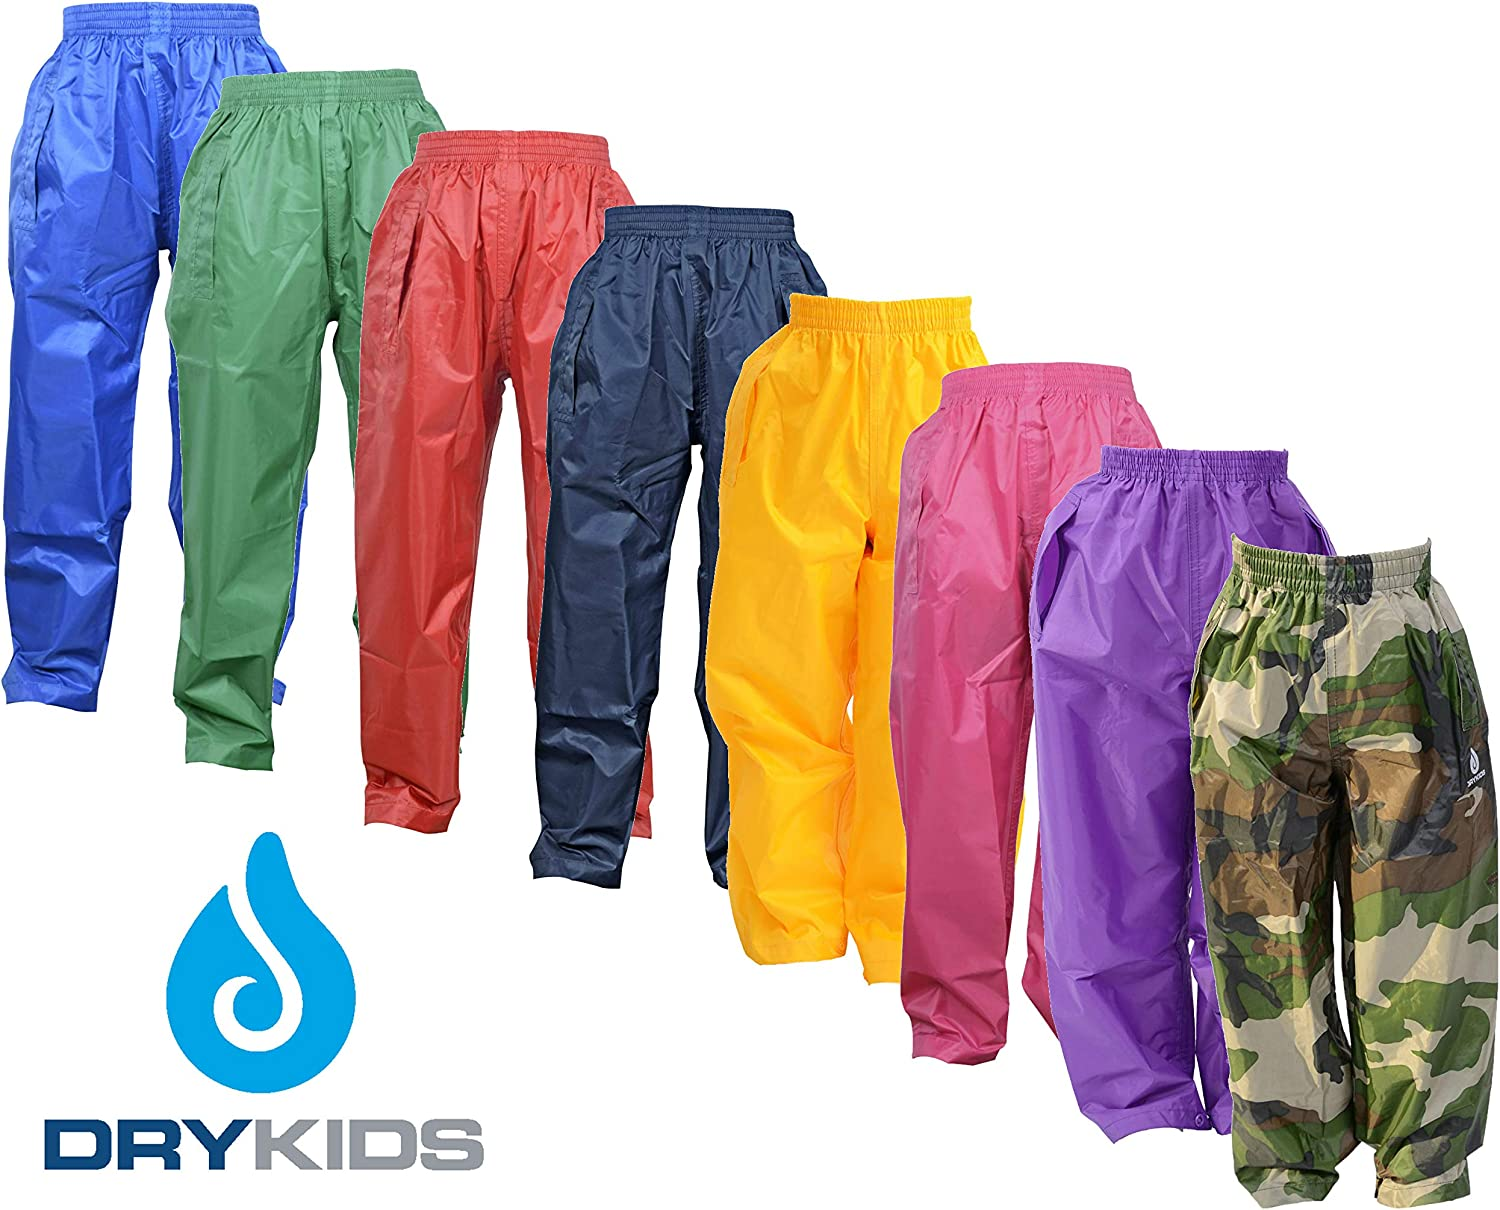 DRY KIDS Childrens Waterproof Over Trousers Boys and Girls Rainwear for Outdoor Play